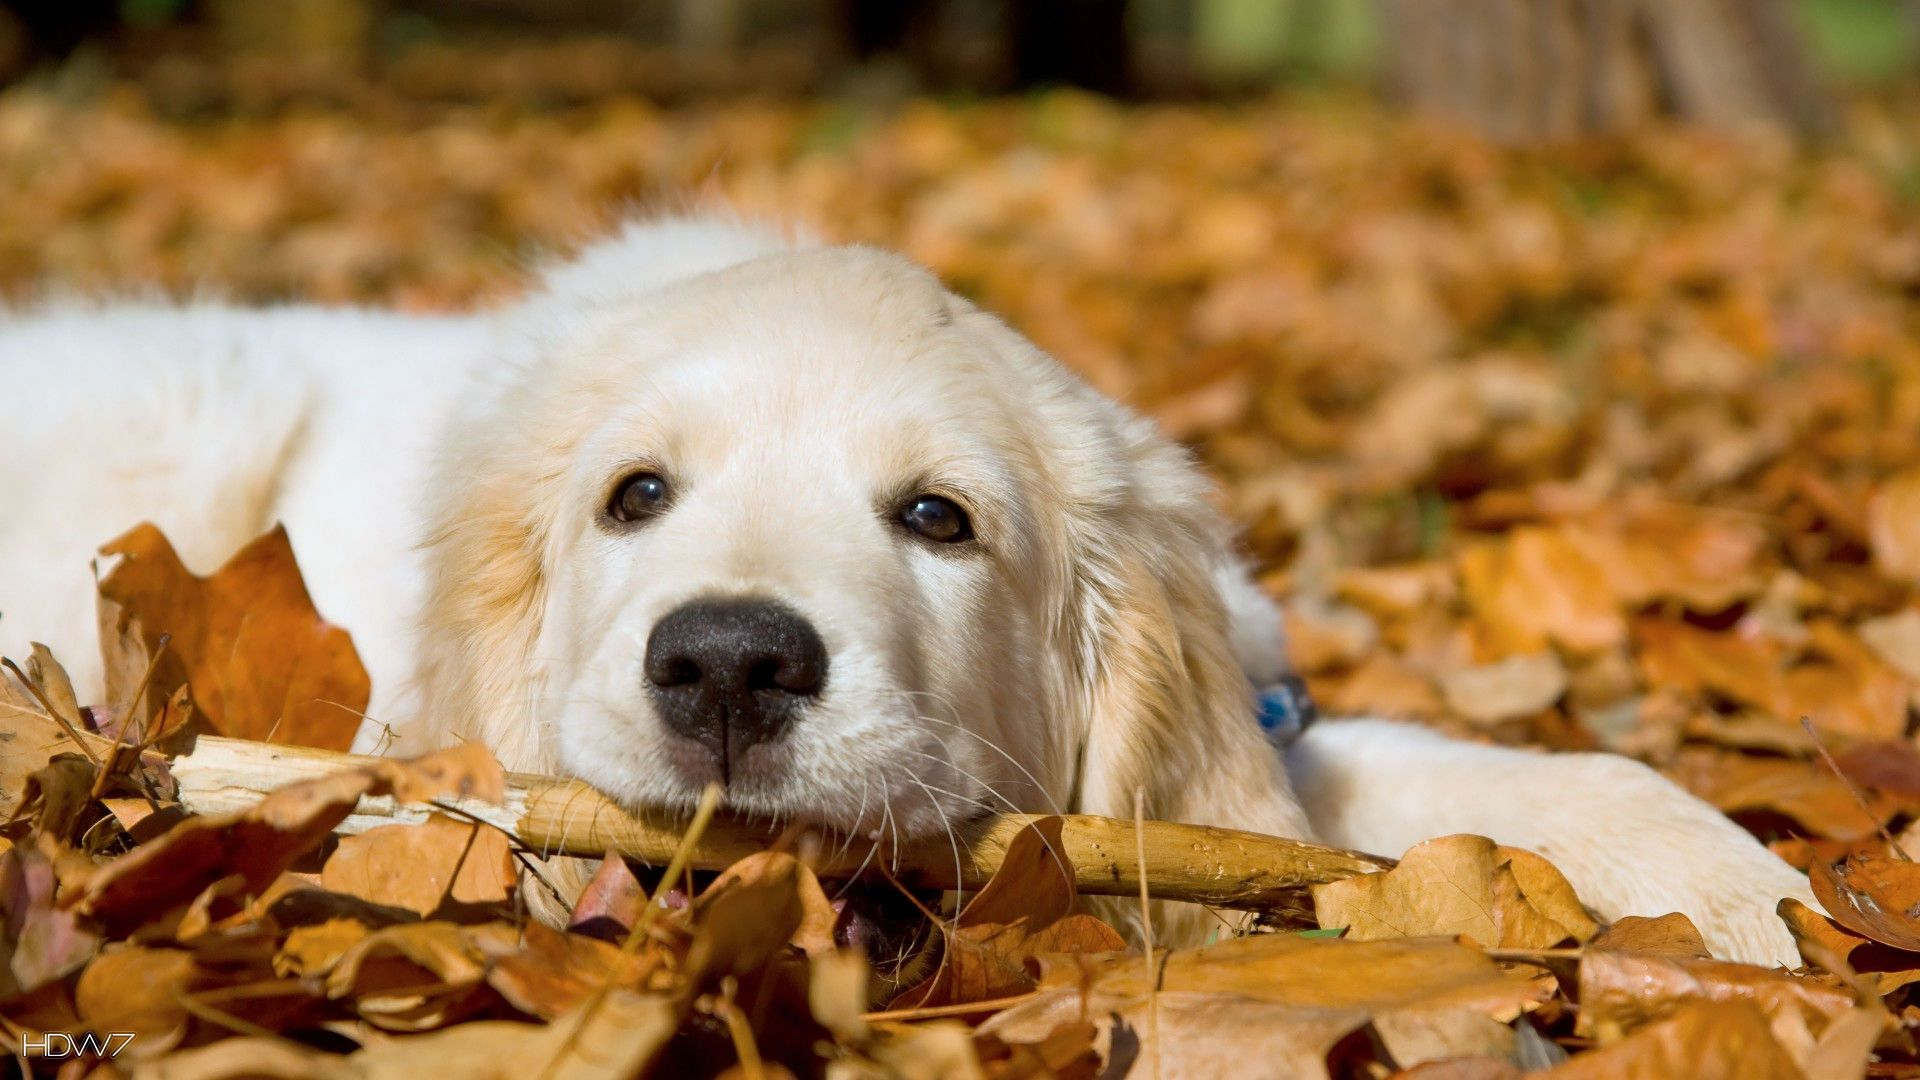 Golden Retriever Hd Wallpapers Top Free Golden Retriever Hd Backgrounds Wallpaperaccess